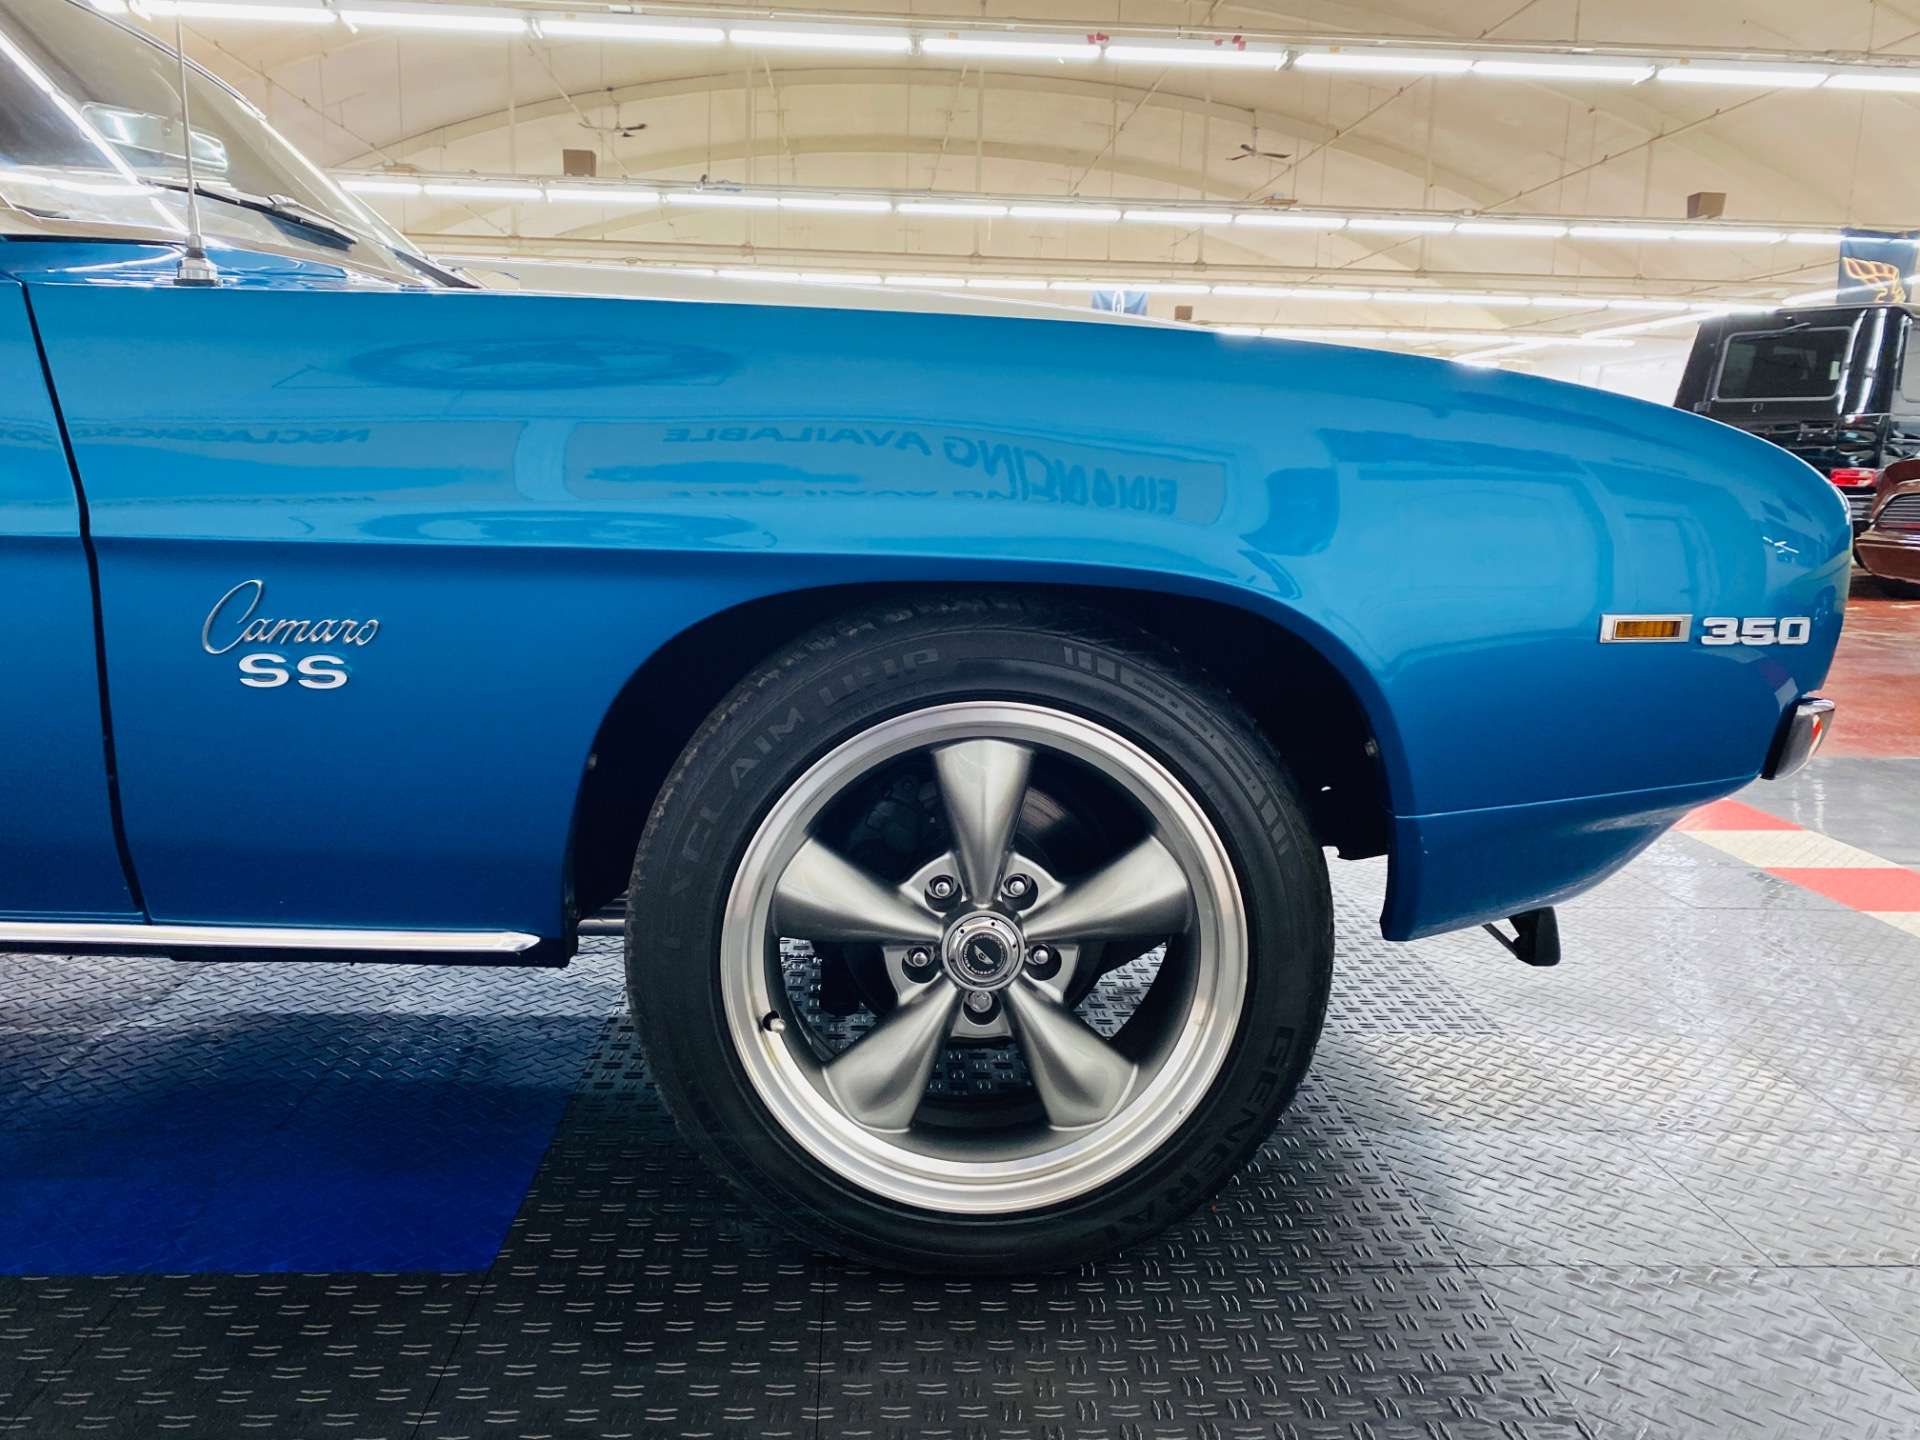 Used 1969 Chevrolet Camaro - X55 SUPER SPORT - NUMBERS MATCHING ENGINE - FUEL INJECTED - SEE VIDEO | Mundelein, IL